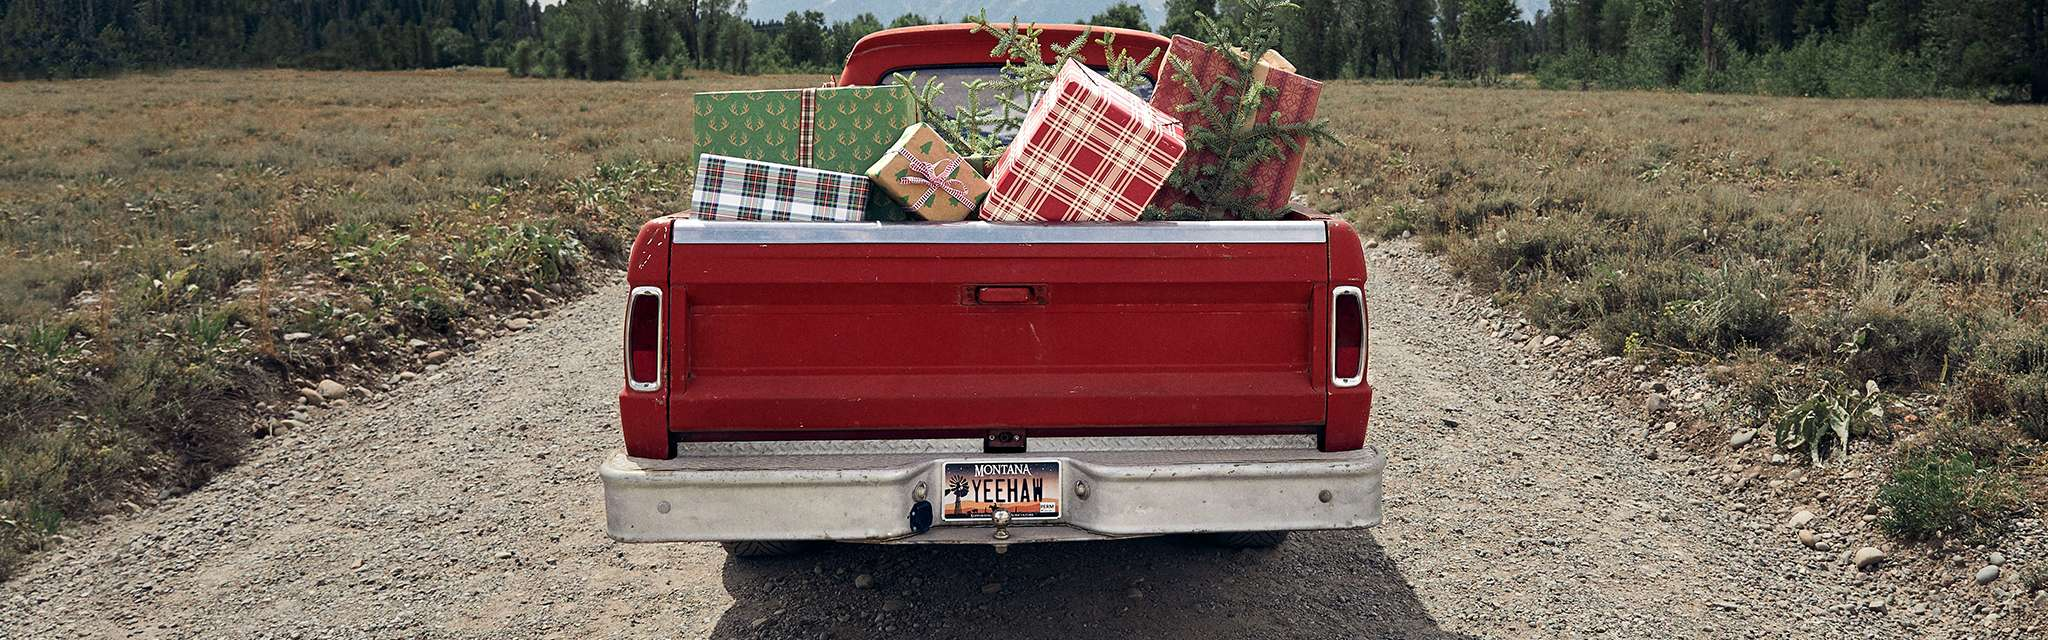 truck with gifts